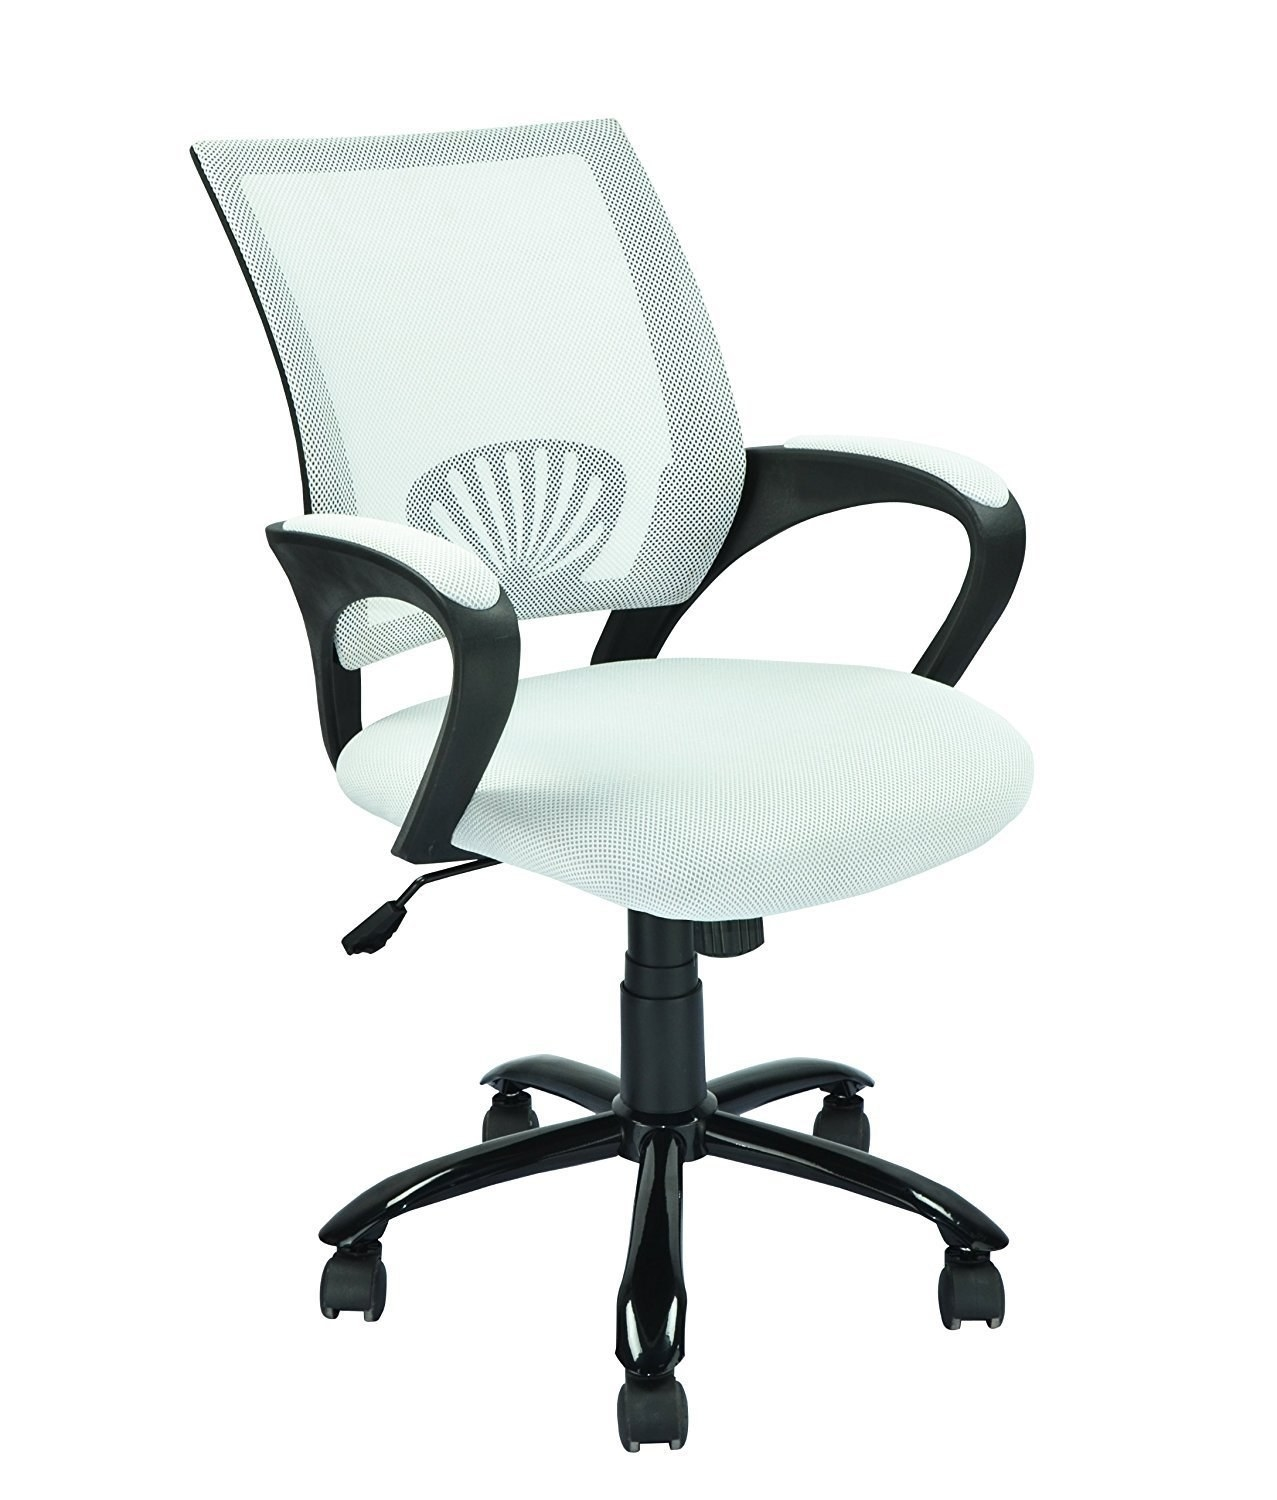 A mesh-back desk chair guaranteed to have your office looking put together,  not meshy.